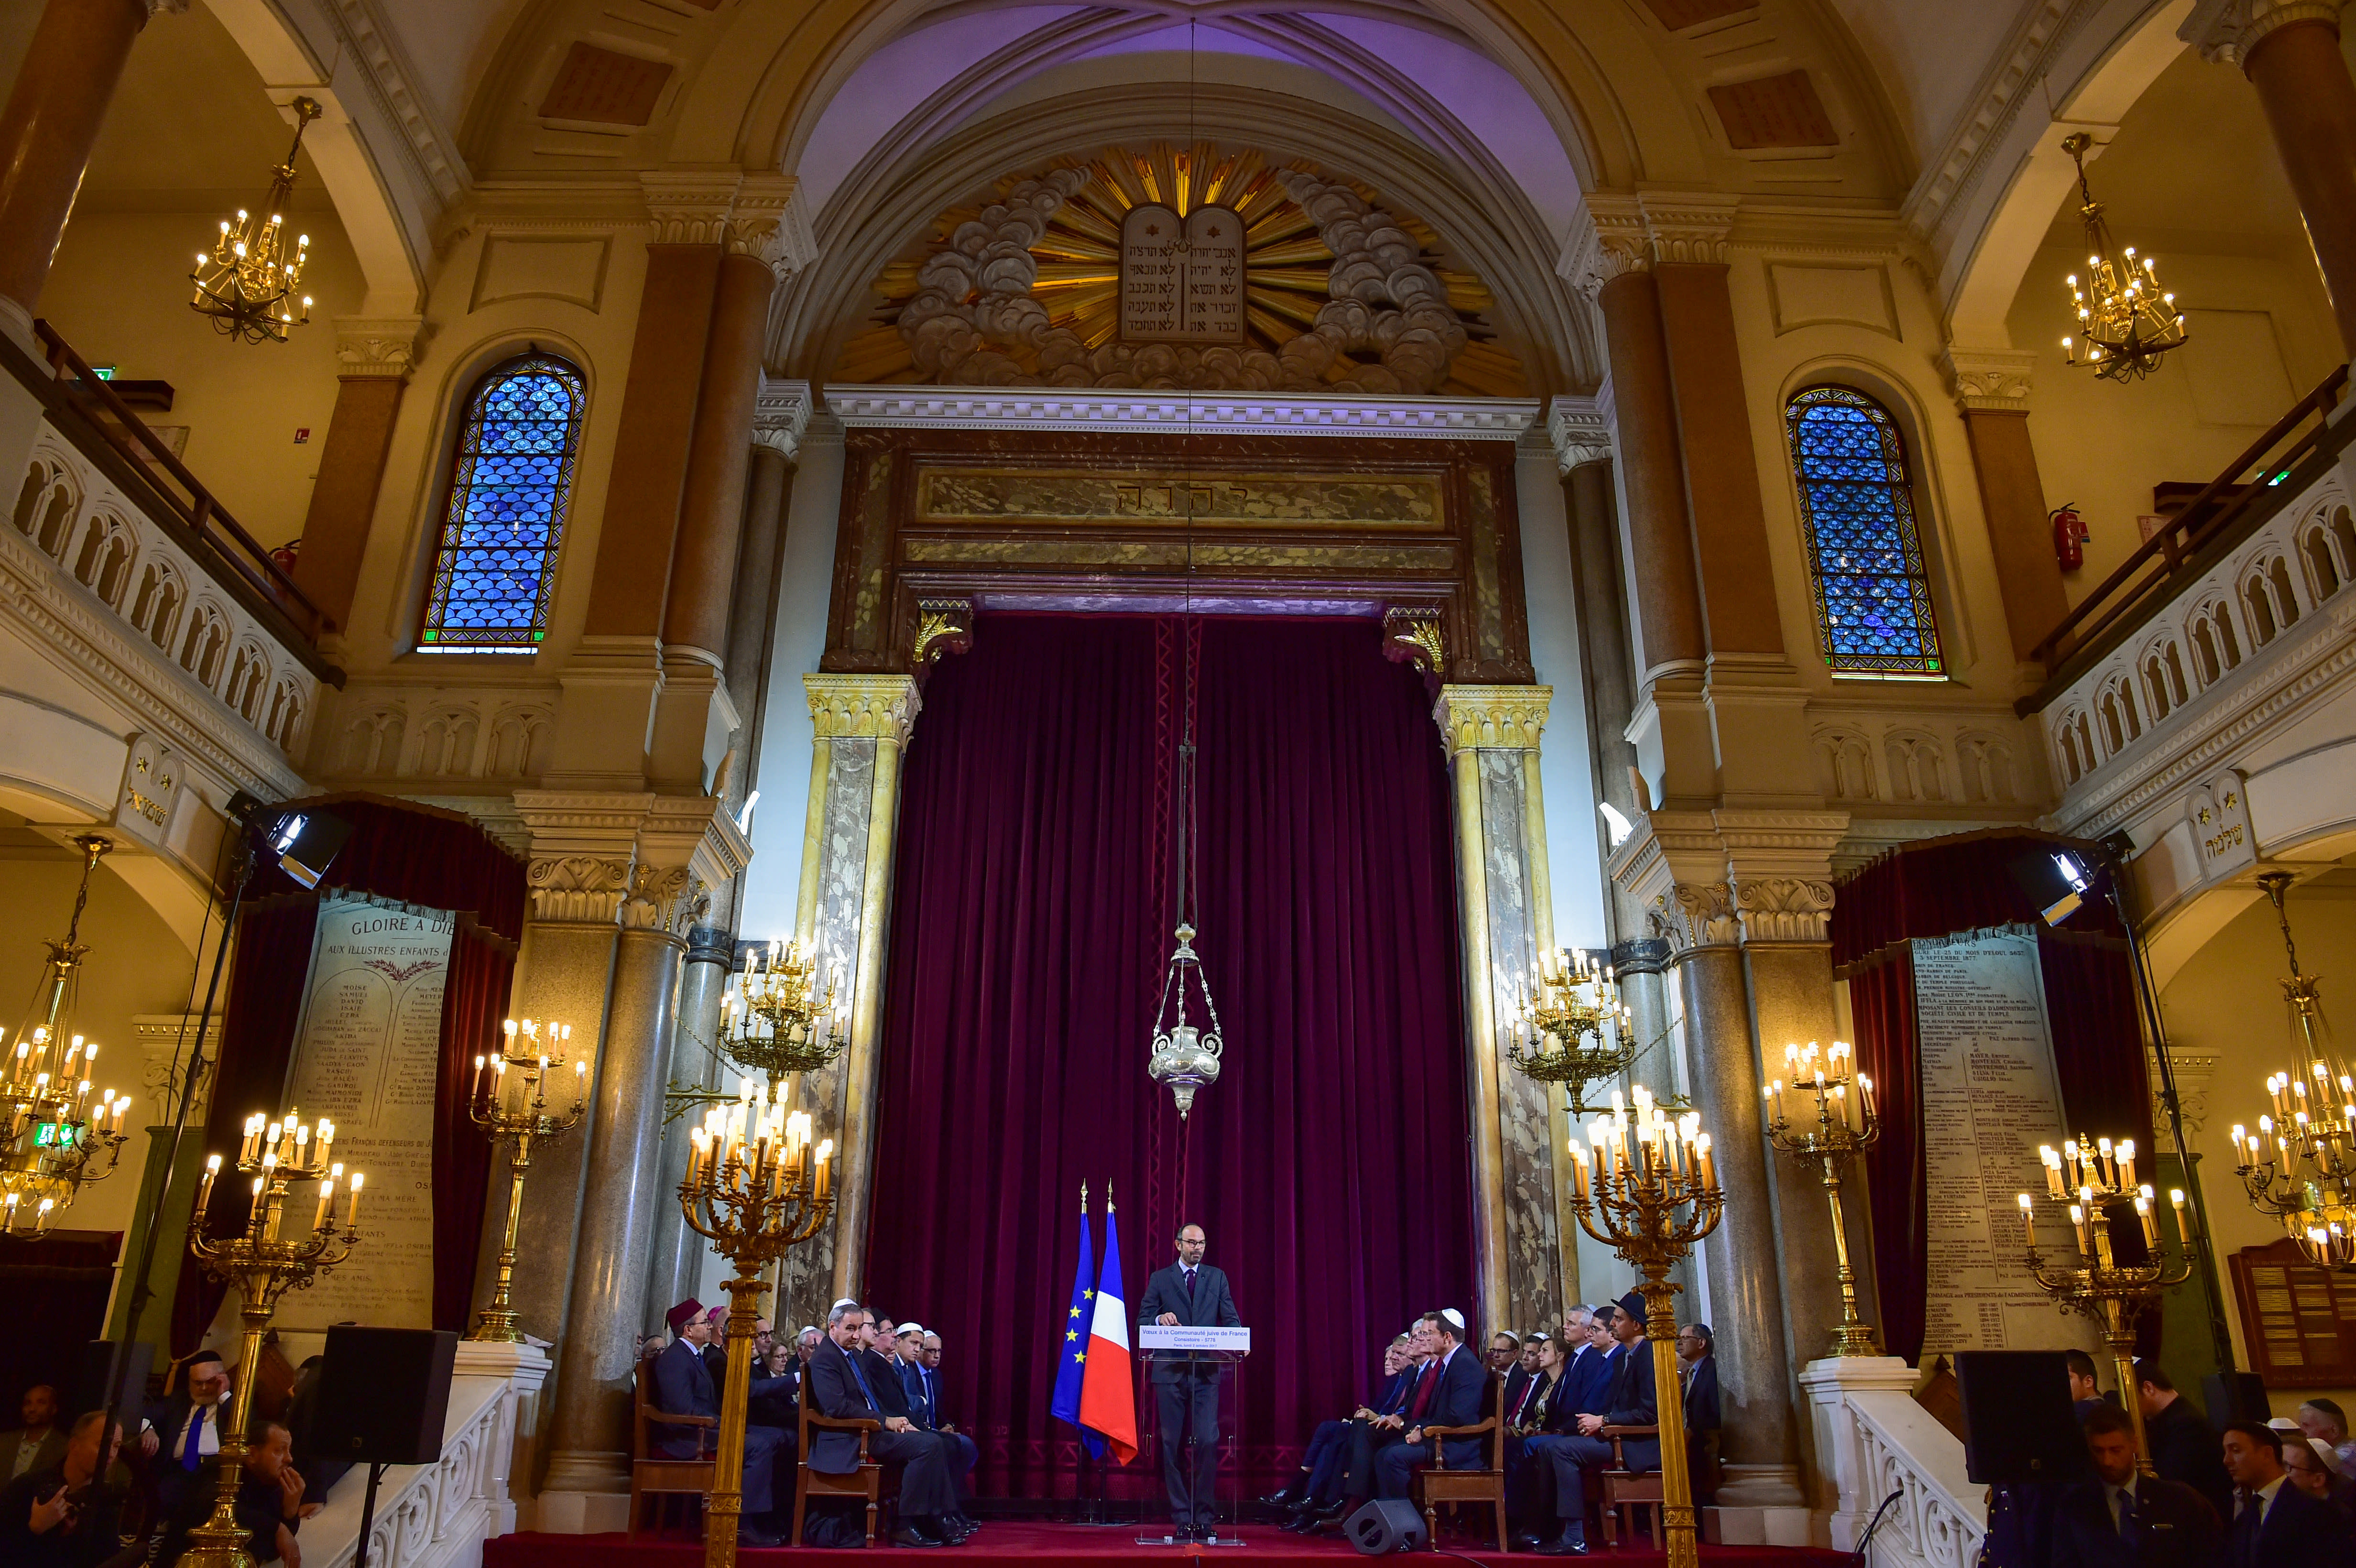 French Prime Minister Edouard Philippe delivers a speech to the Jewish Community for the Jewish New Year, or Rosh Hashanah, at the Buffault Synagogue in Paris, France, October 2, 2017. (Reuters)